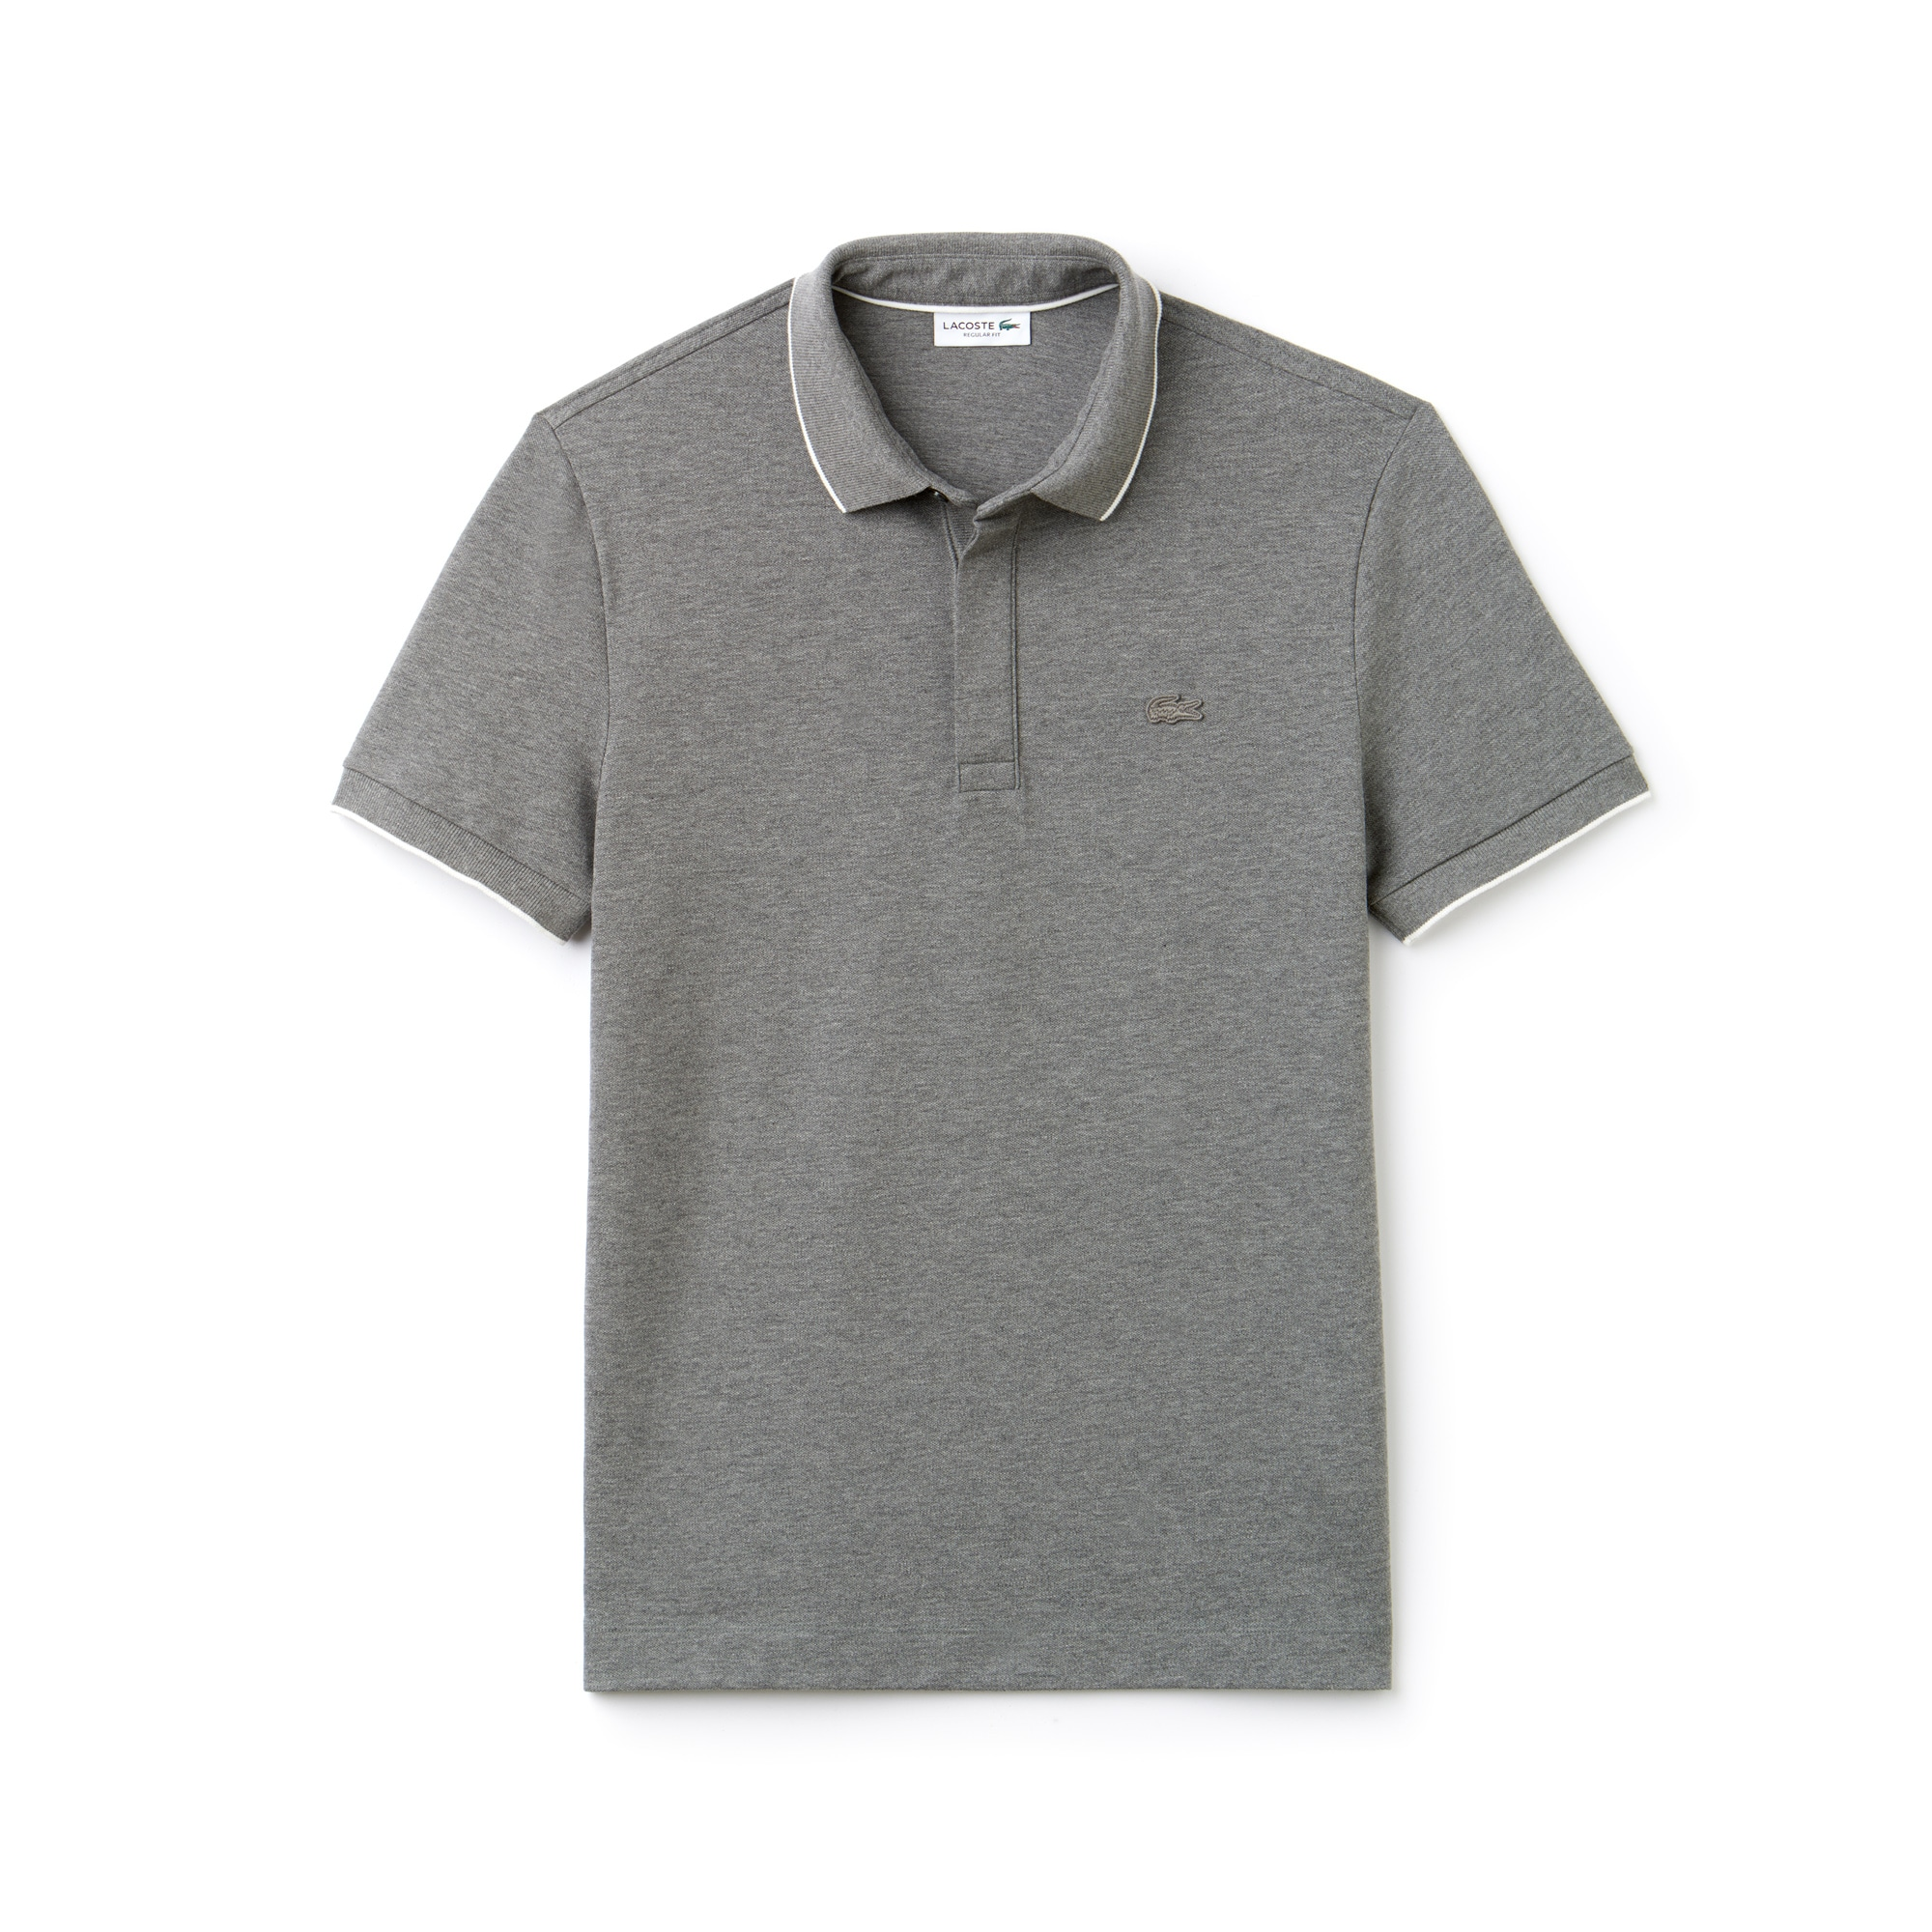 라코스테 Lacoste Mens Regular Fit Piped Stretch Pique Polo,stone chine/flour